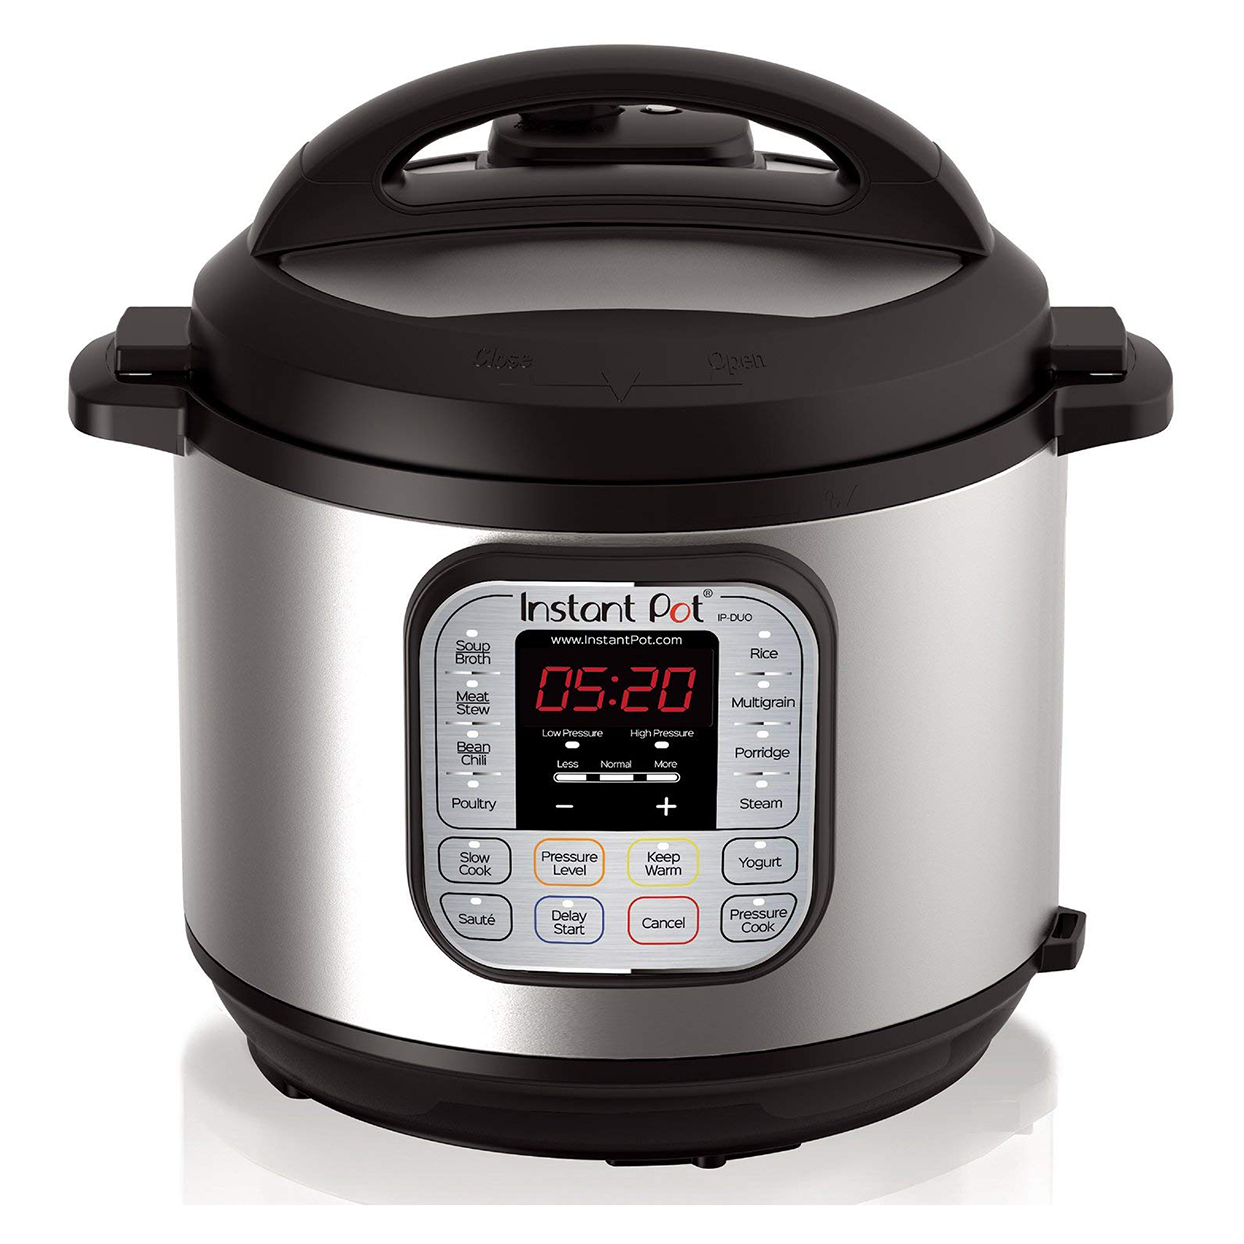 7 Common Instant Pot Mistakes (And How to Avoid Them)